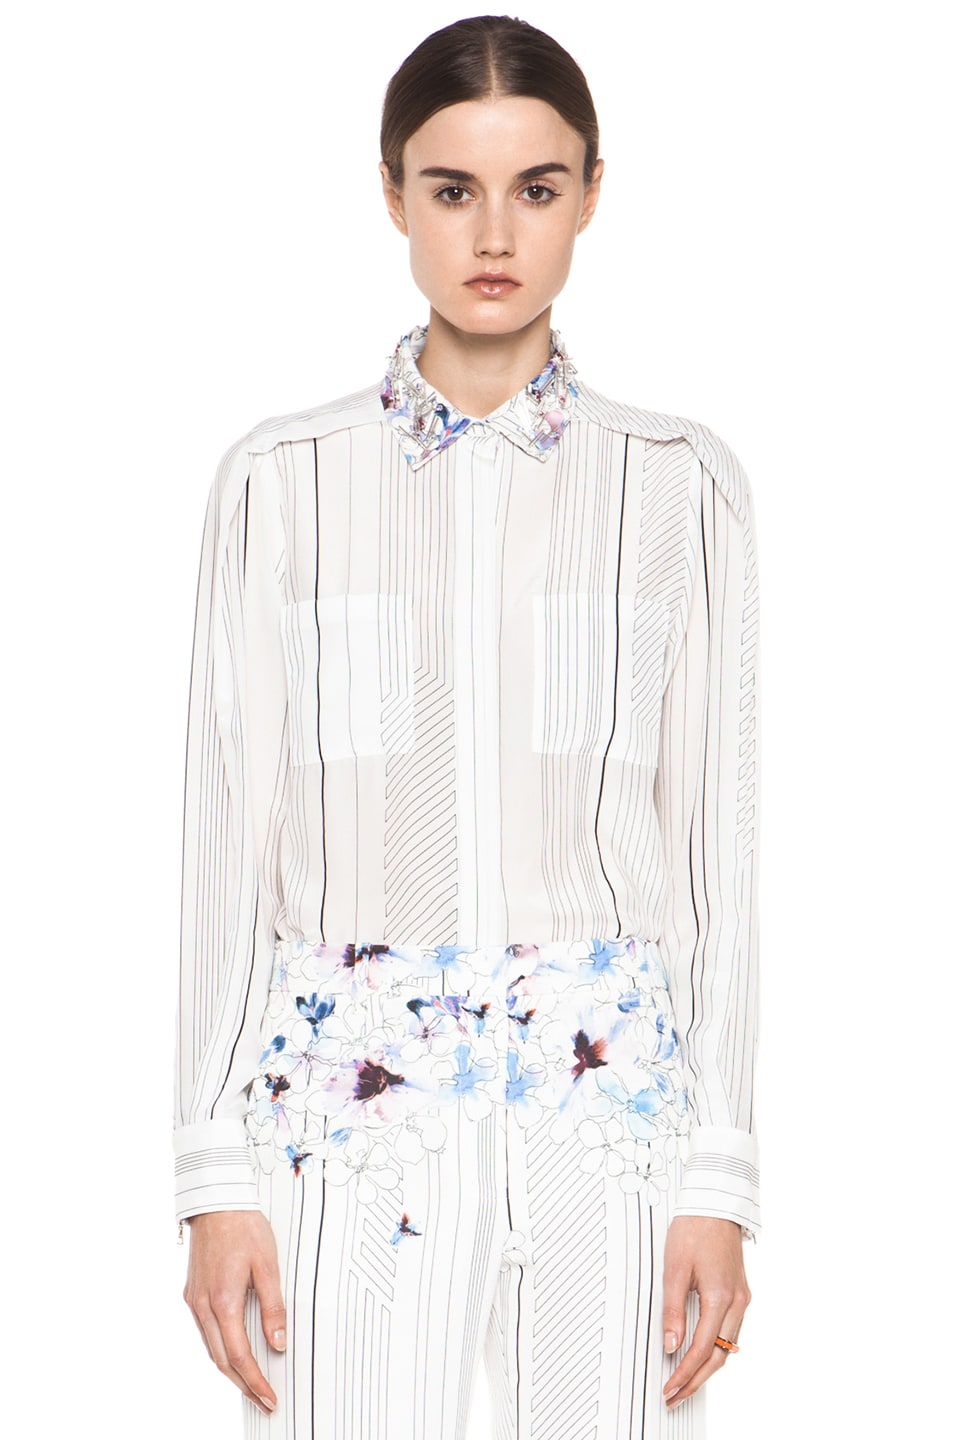 Image 1 of 3.1 phillip lim Pleat Shoulder Shirt with Embellished Collar in Antique White